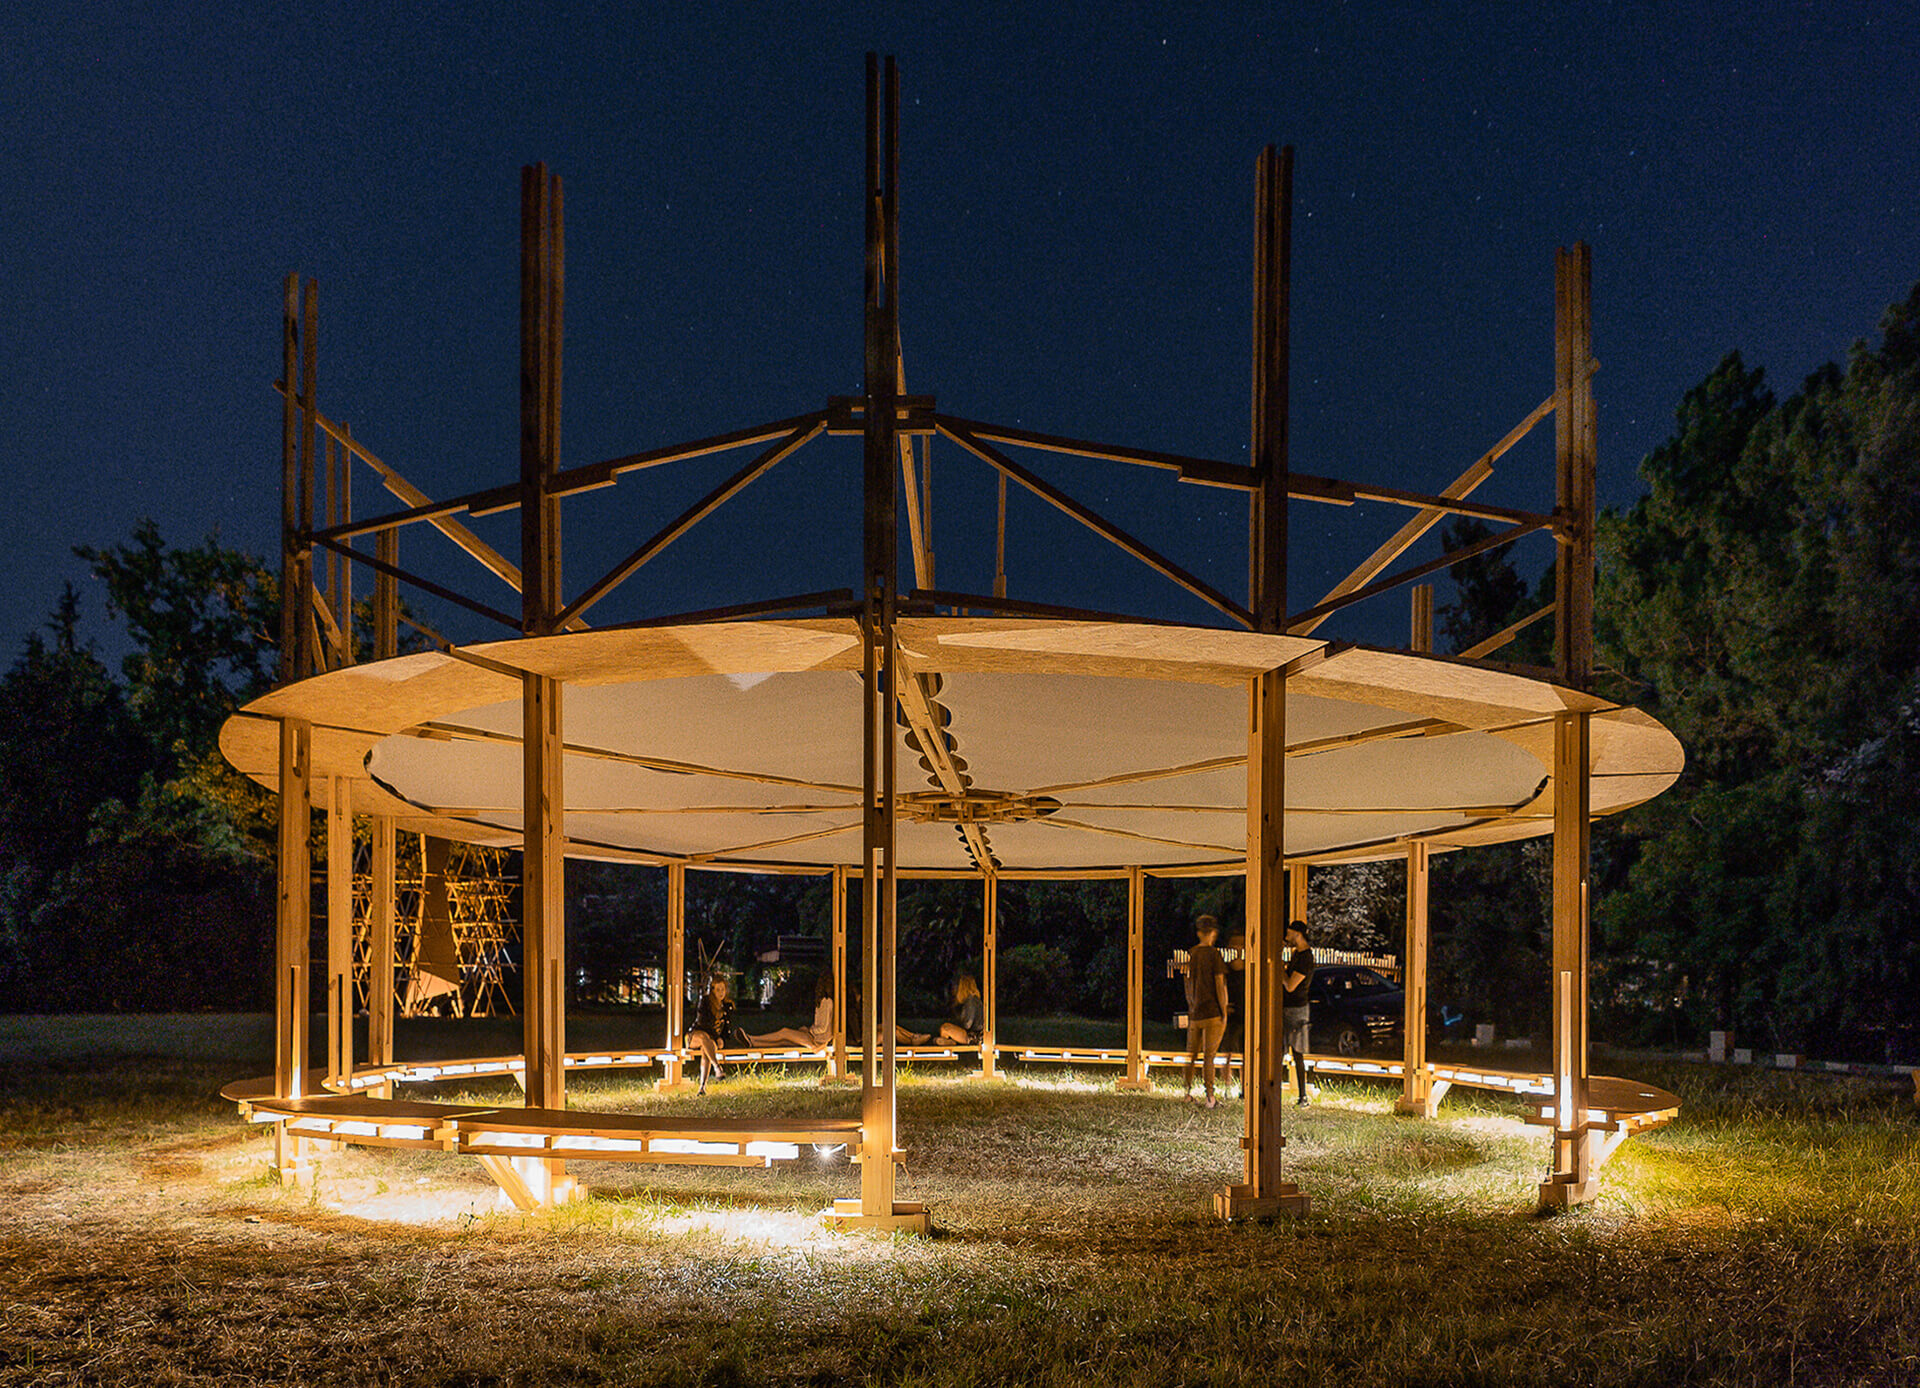 Project Carpa Itinerante was used as an architectural intervention for the traveling community | Hello Wood Festival | Installations in Wood | STIRworld